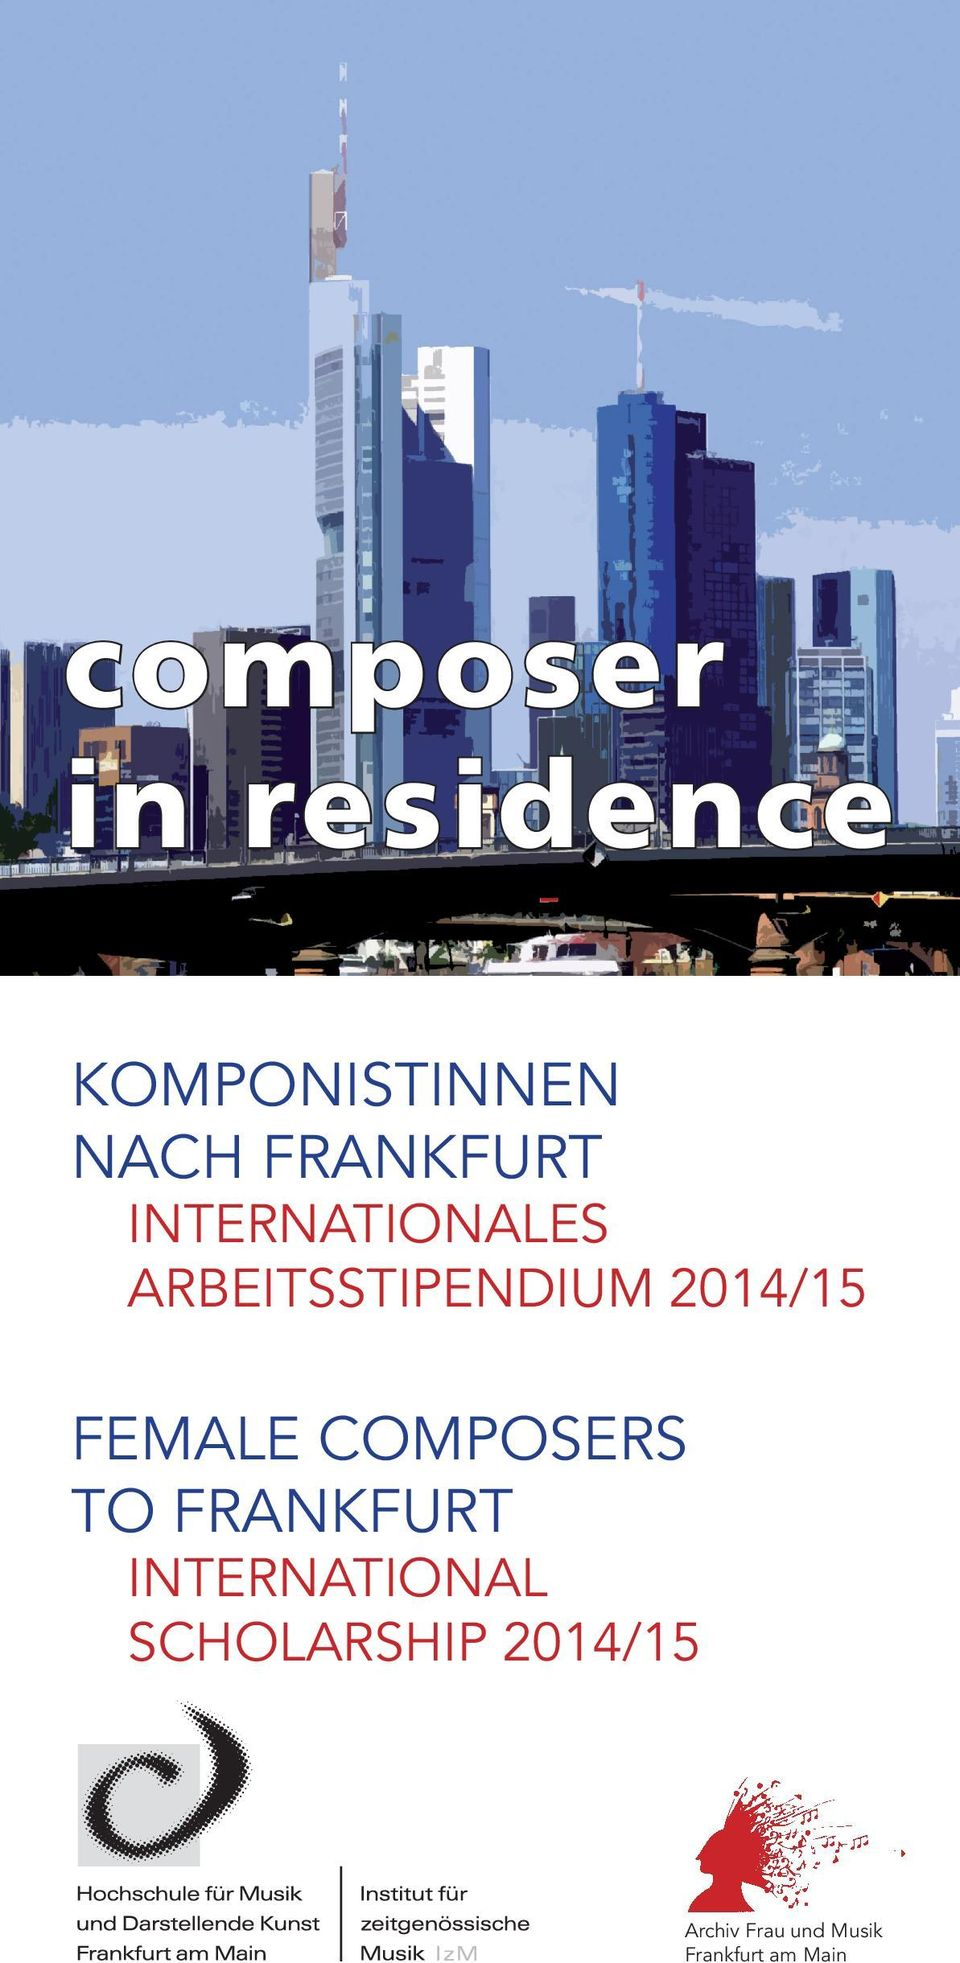 2014/15 FEMALE COMPOSERS TO FRANKFURT